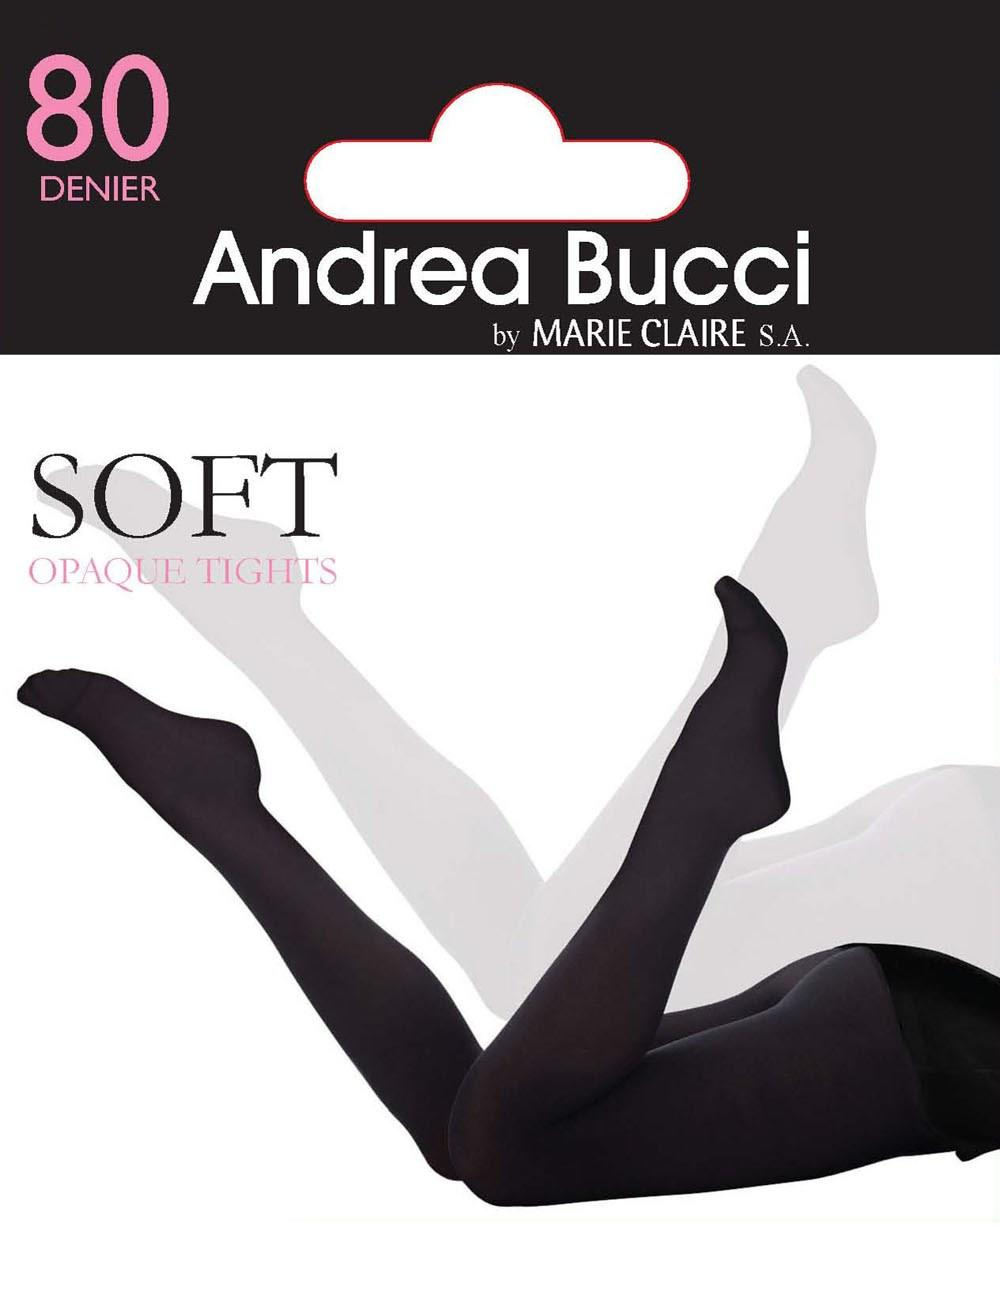 Andrea Bucci Black Opaque Tights in 80 Den | The LBD Boutique & Trouser Shop